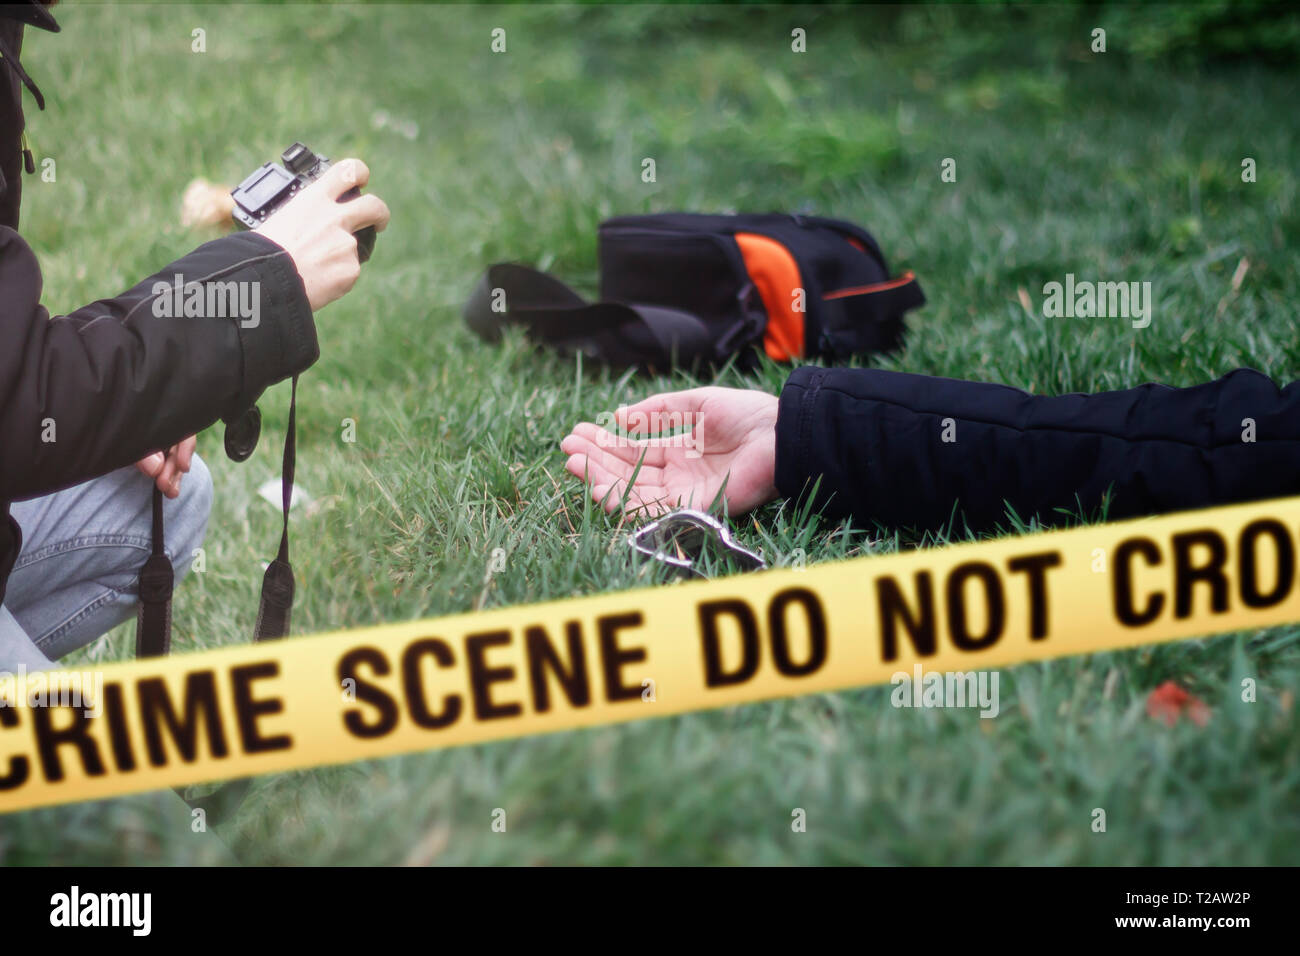 Criminological expert photographing evidence at the crime scene. Law and police concept. Selective focus - Stock Image